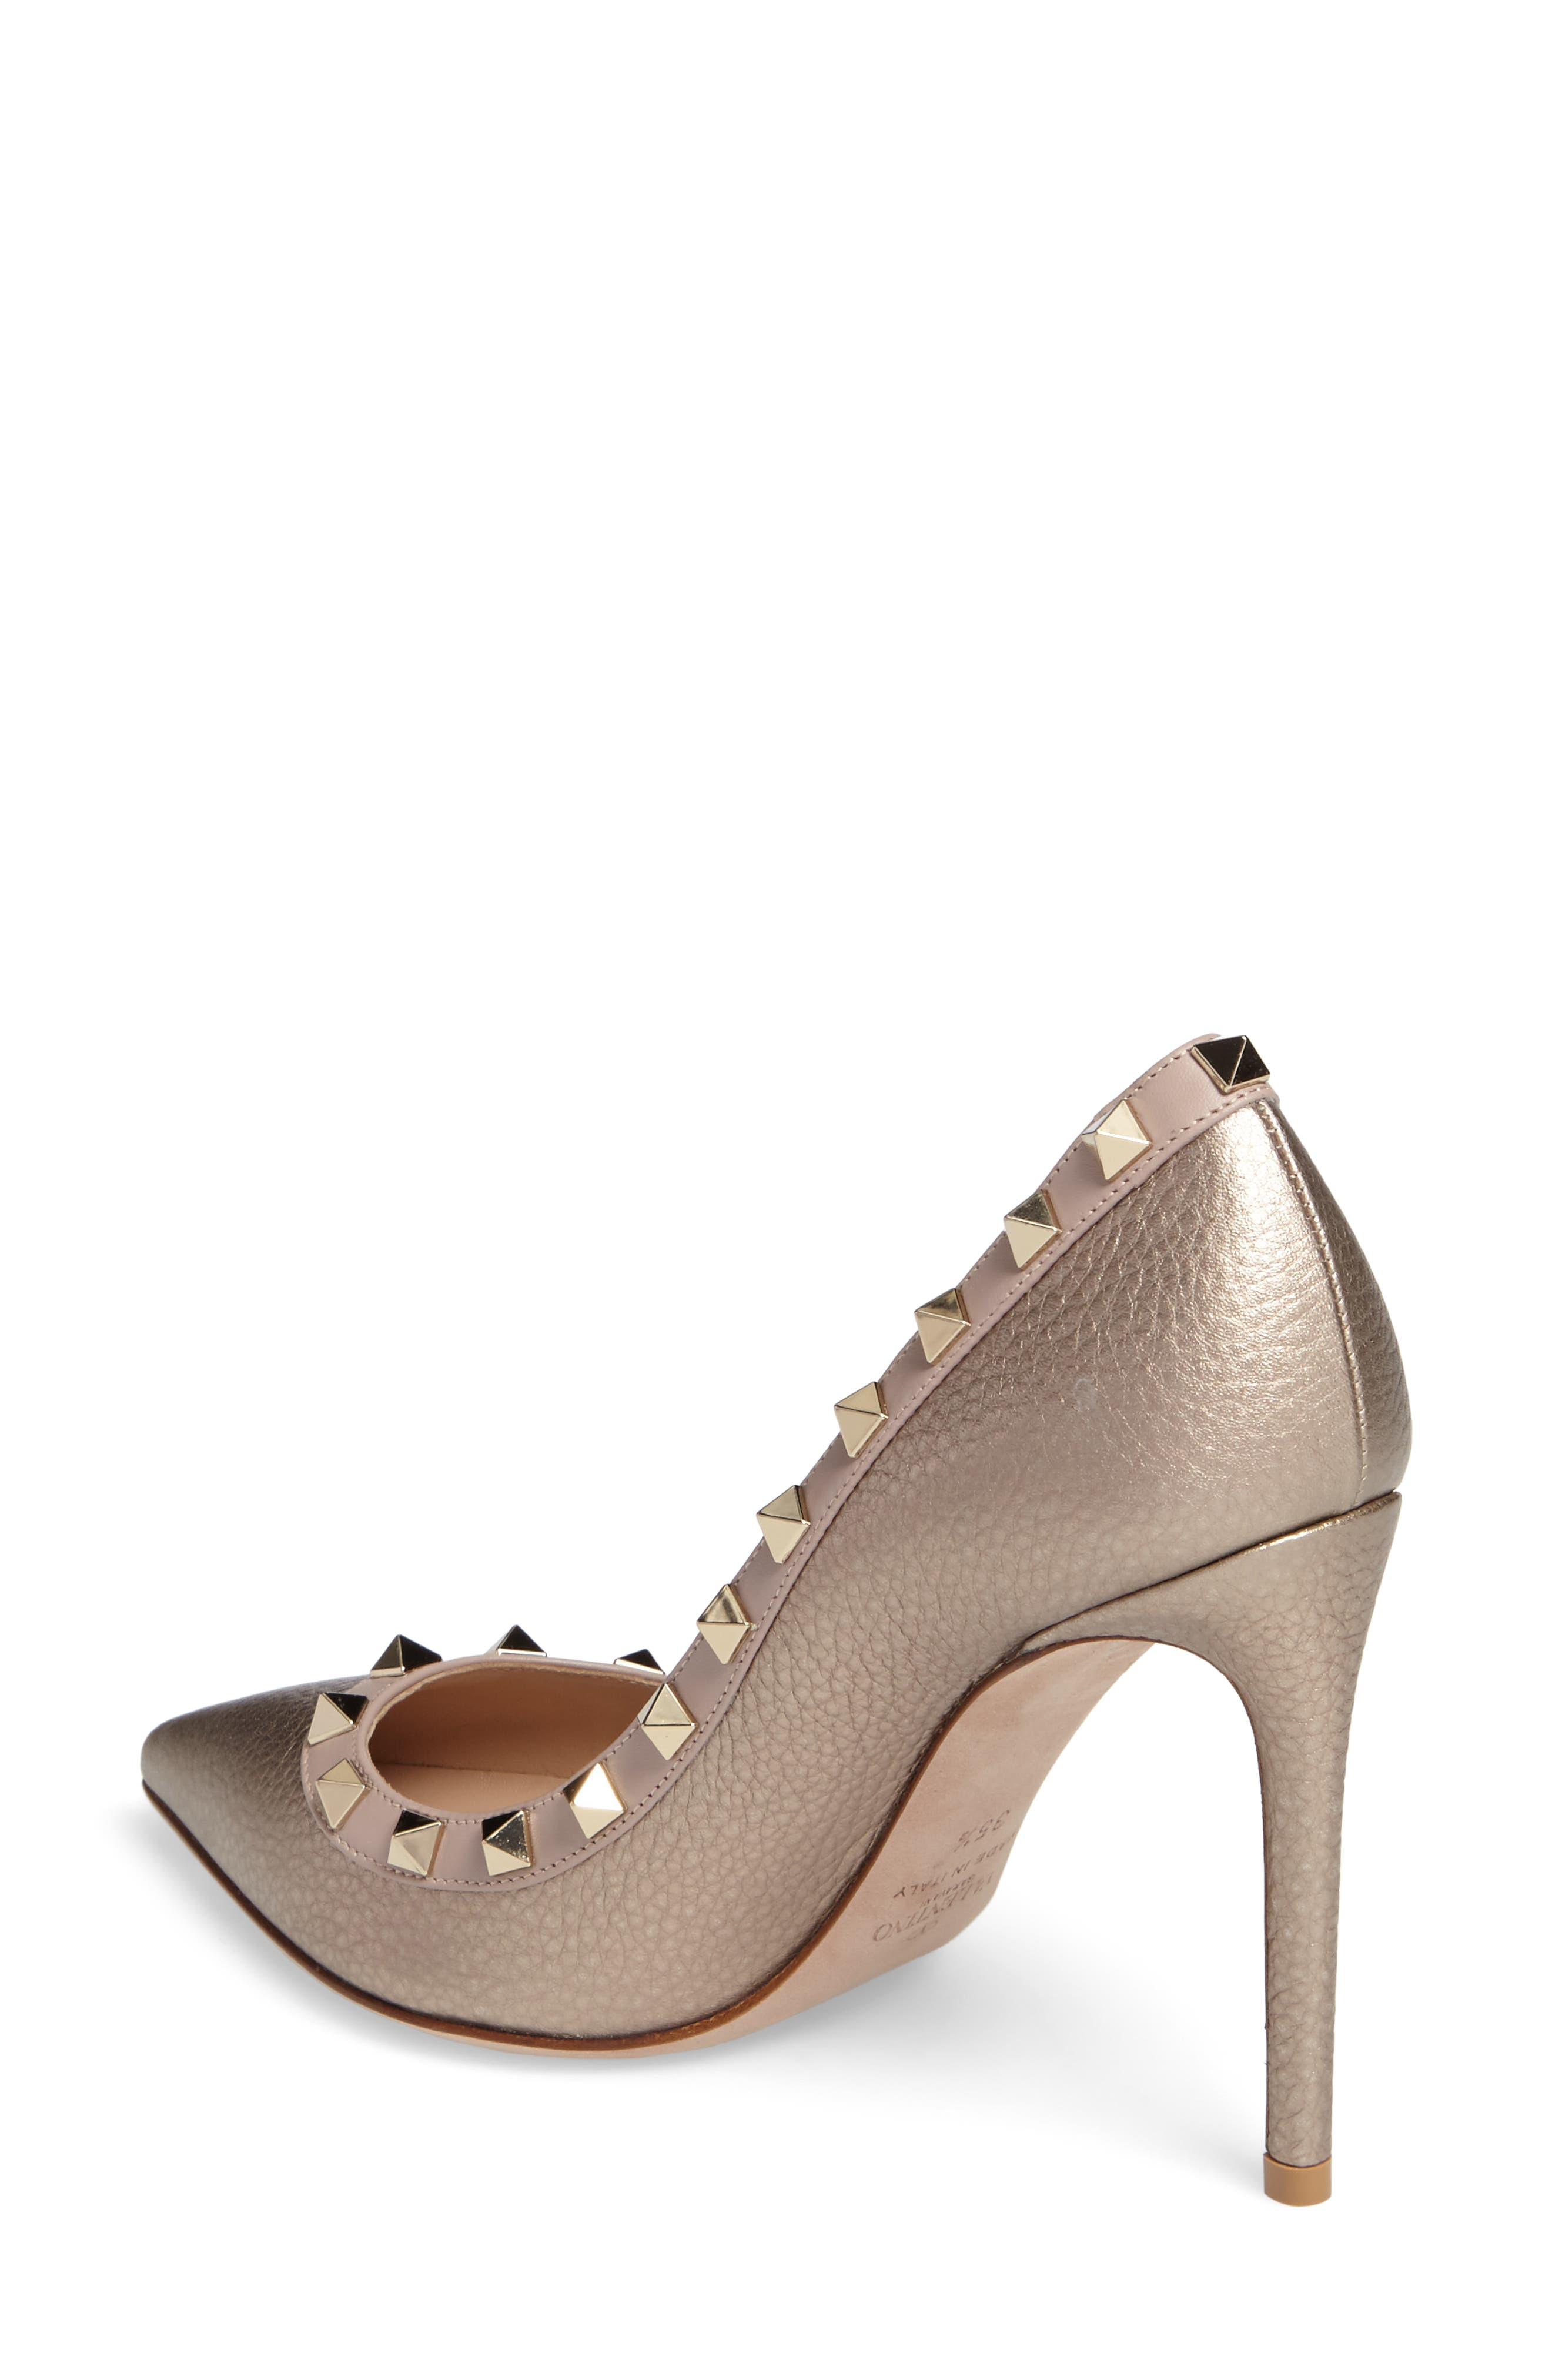 Rockstud Pointy Toe Pump,                             Alternate thumbnail 2, color,                             710